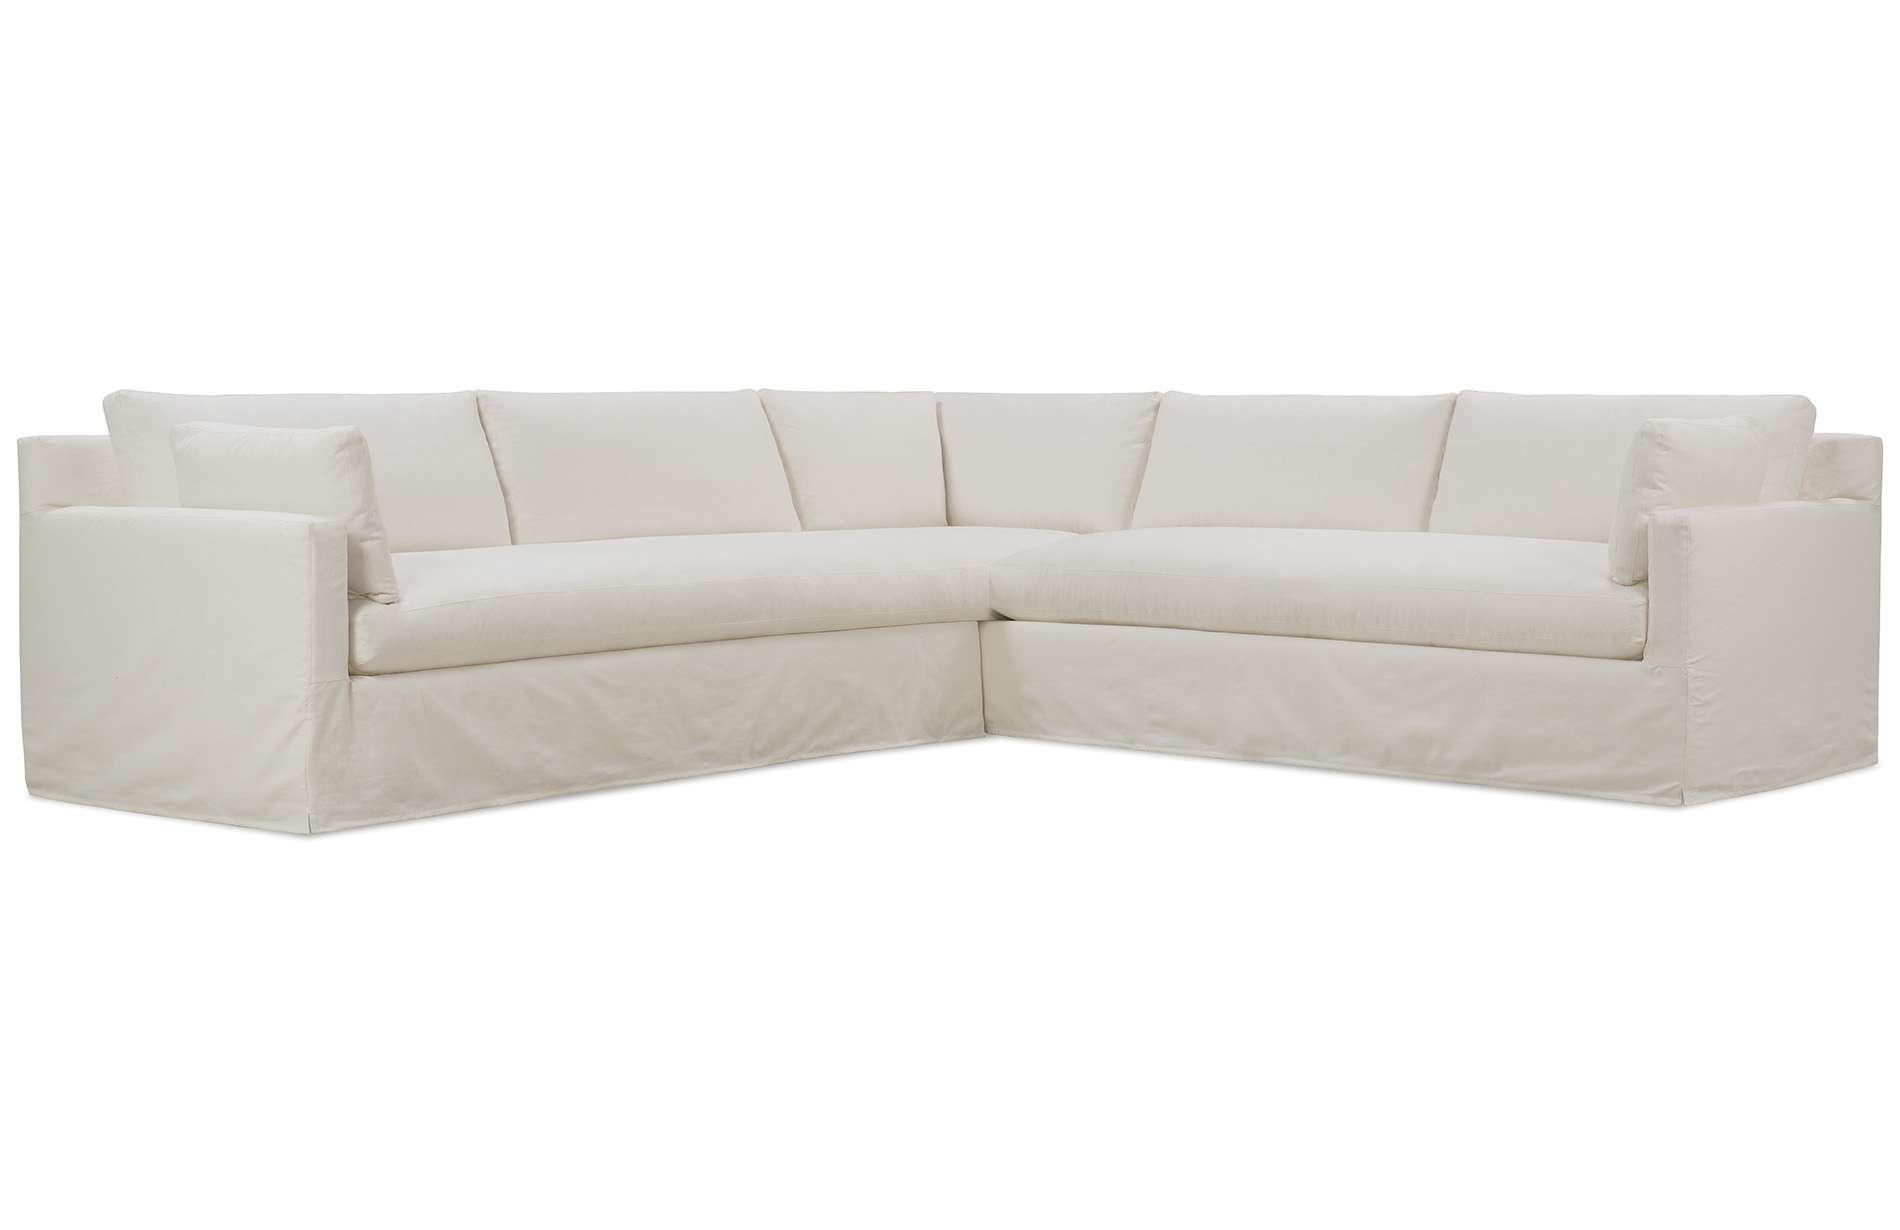 Super Sylvie Bench Seat Slipcover Sectional Gmtry Best Dining Table And Chair Ideas Images Gmtryco